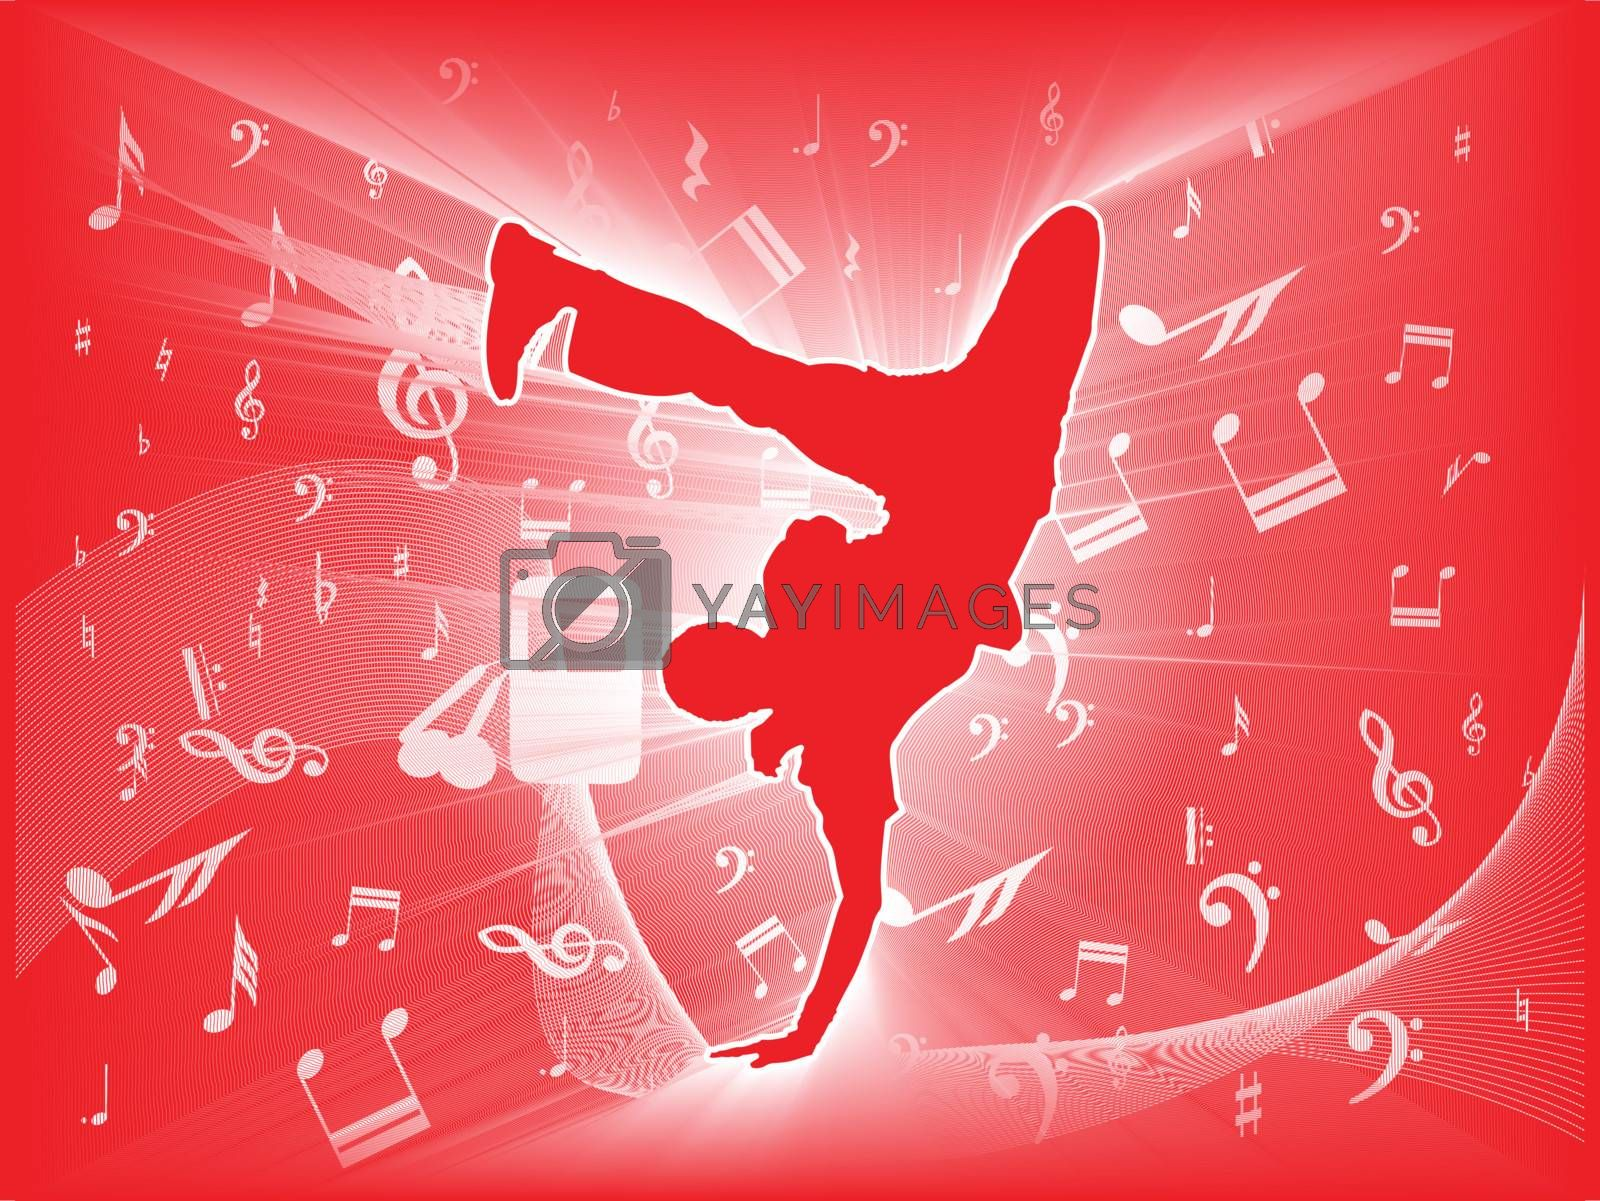 The dancers are dancing on a red background        musical background